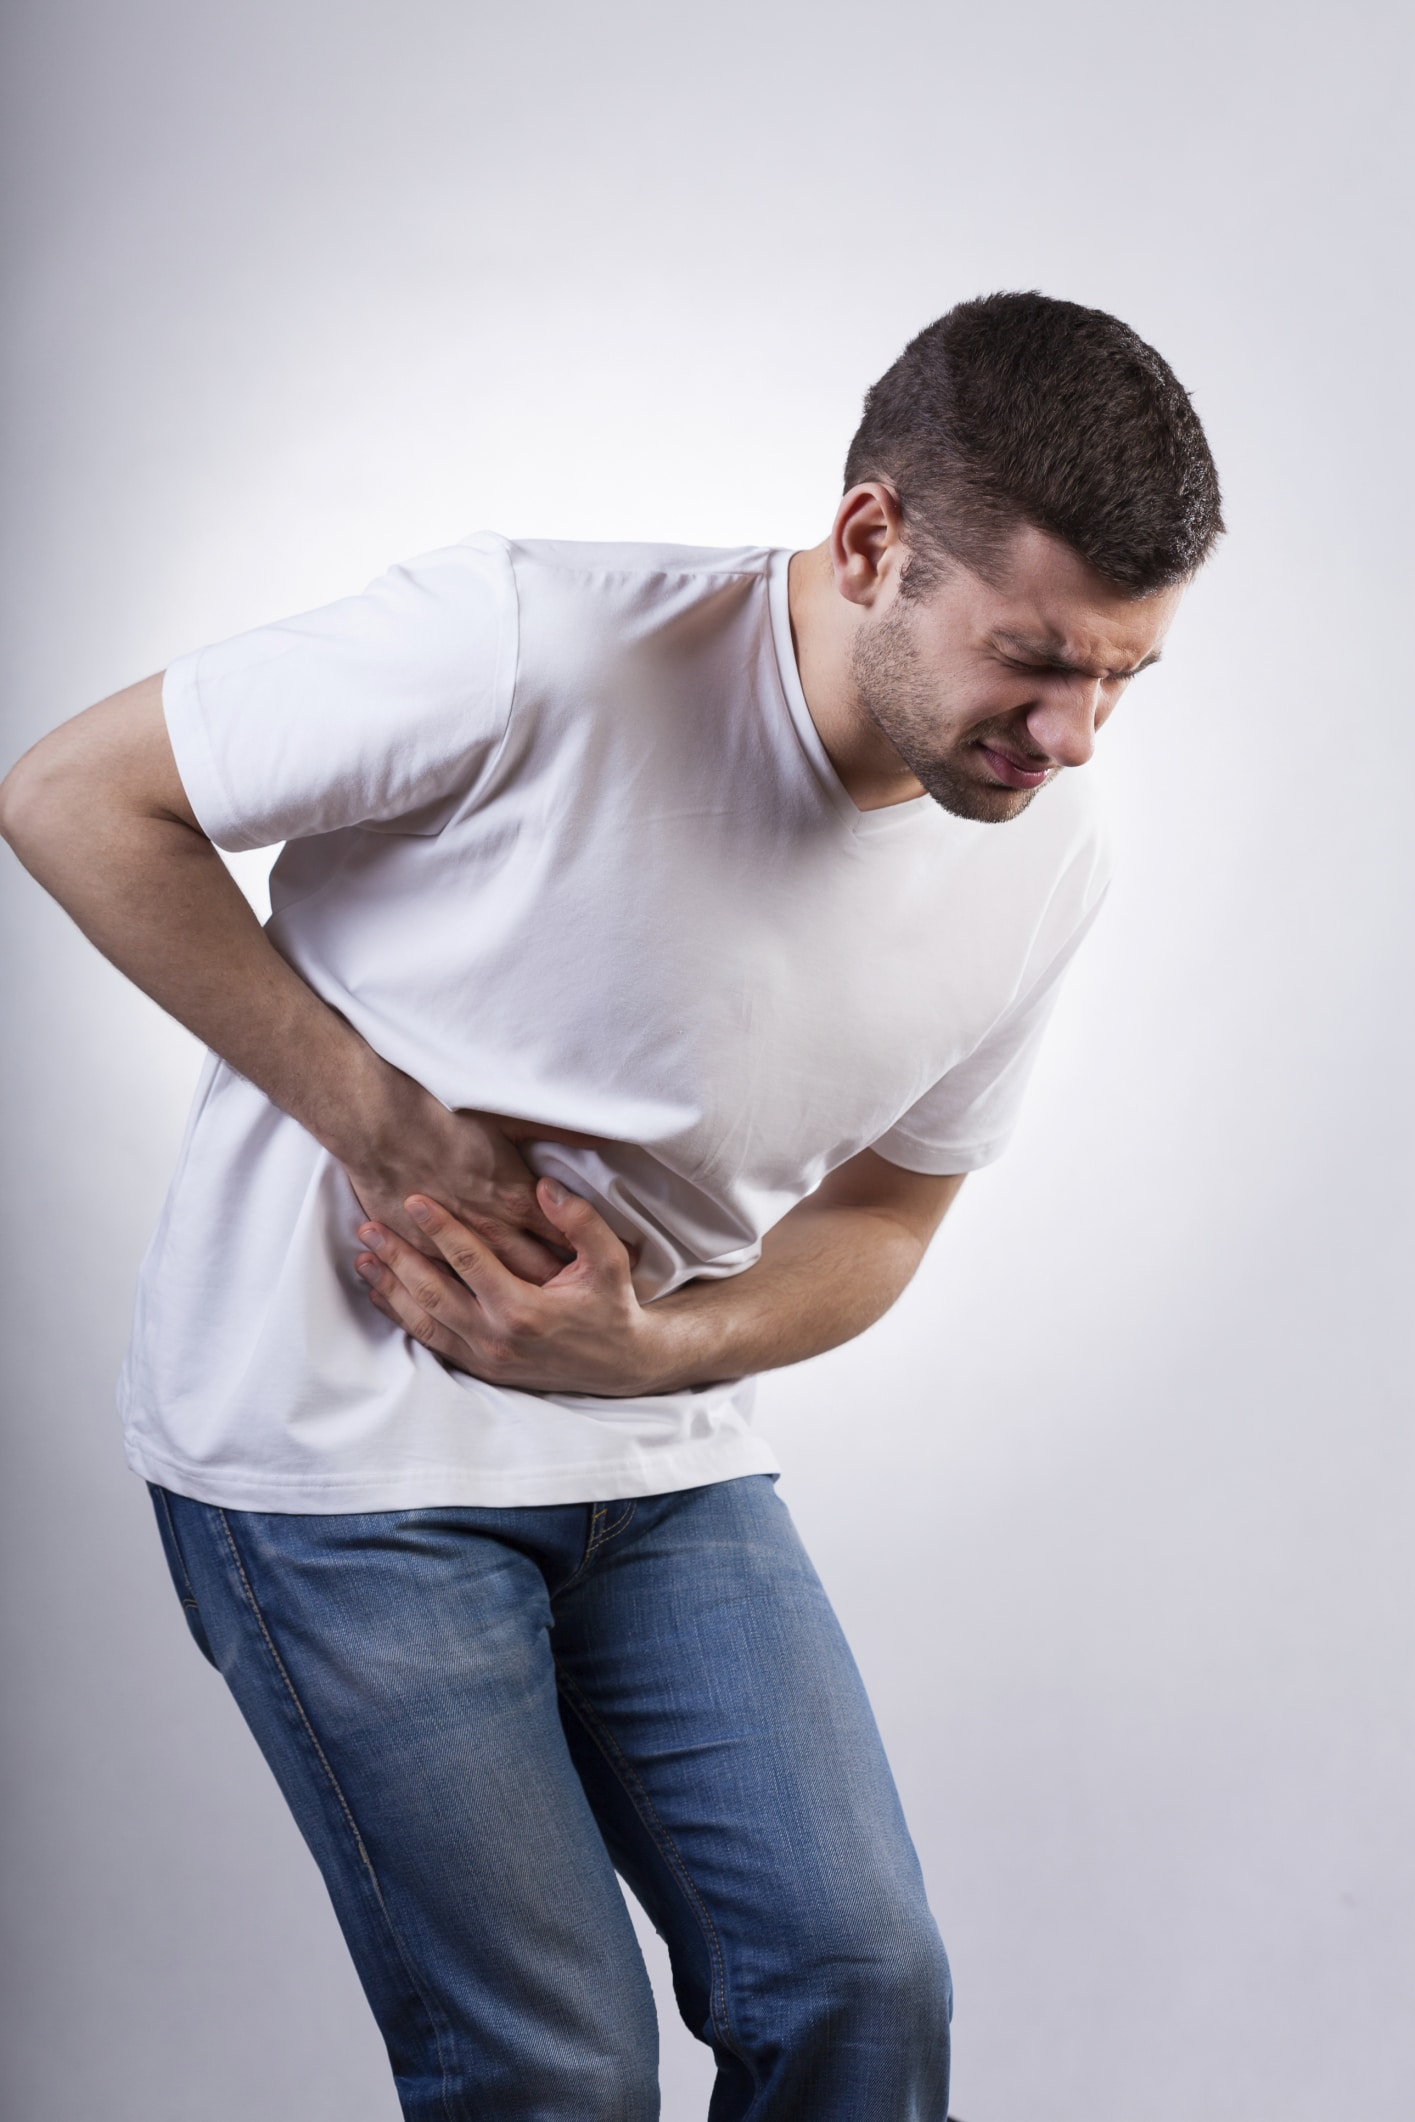 Hypnotherapy For Abdominal Pain – What Are The Causes Of Abdominal Pain?